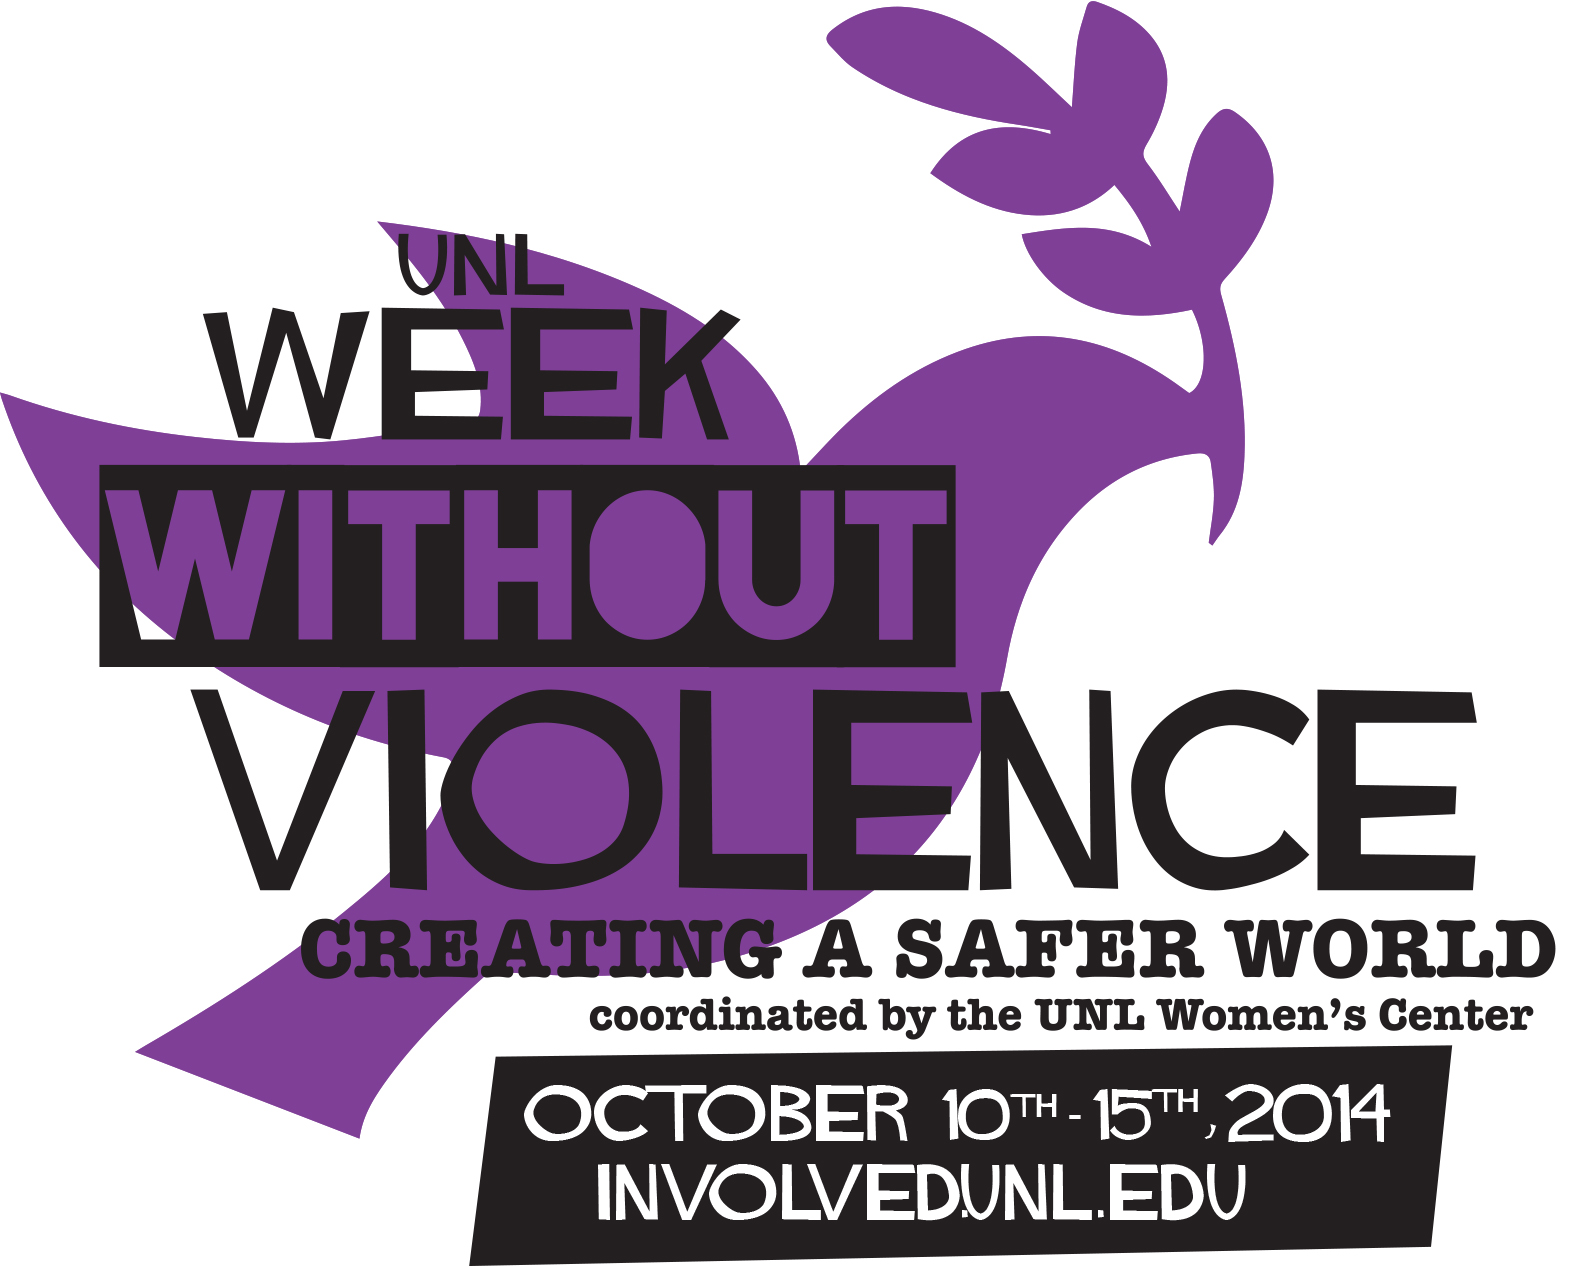 Week Without Violence 2014